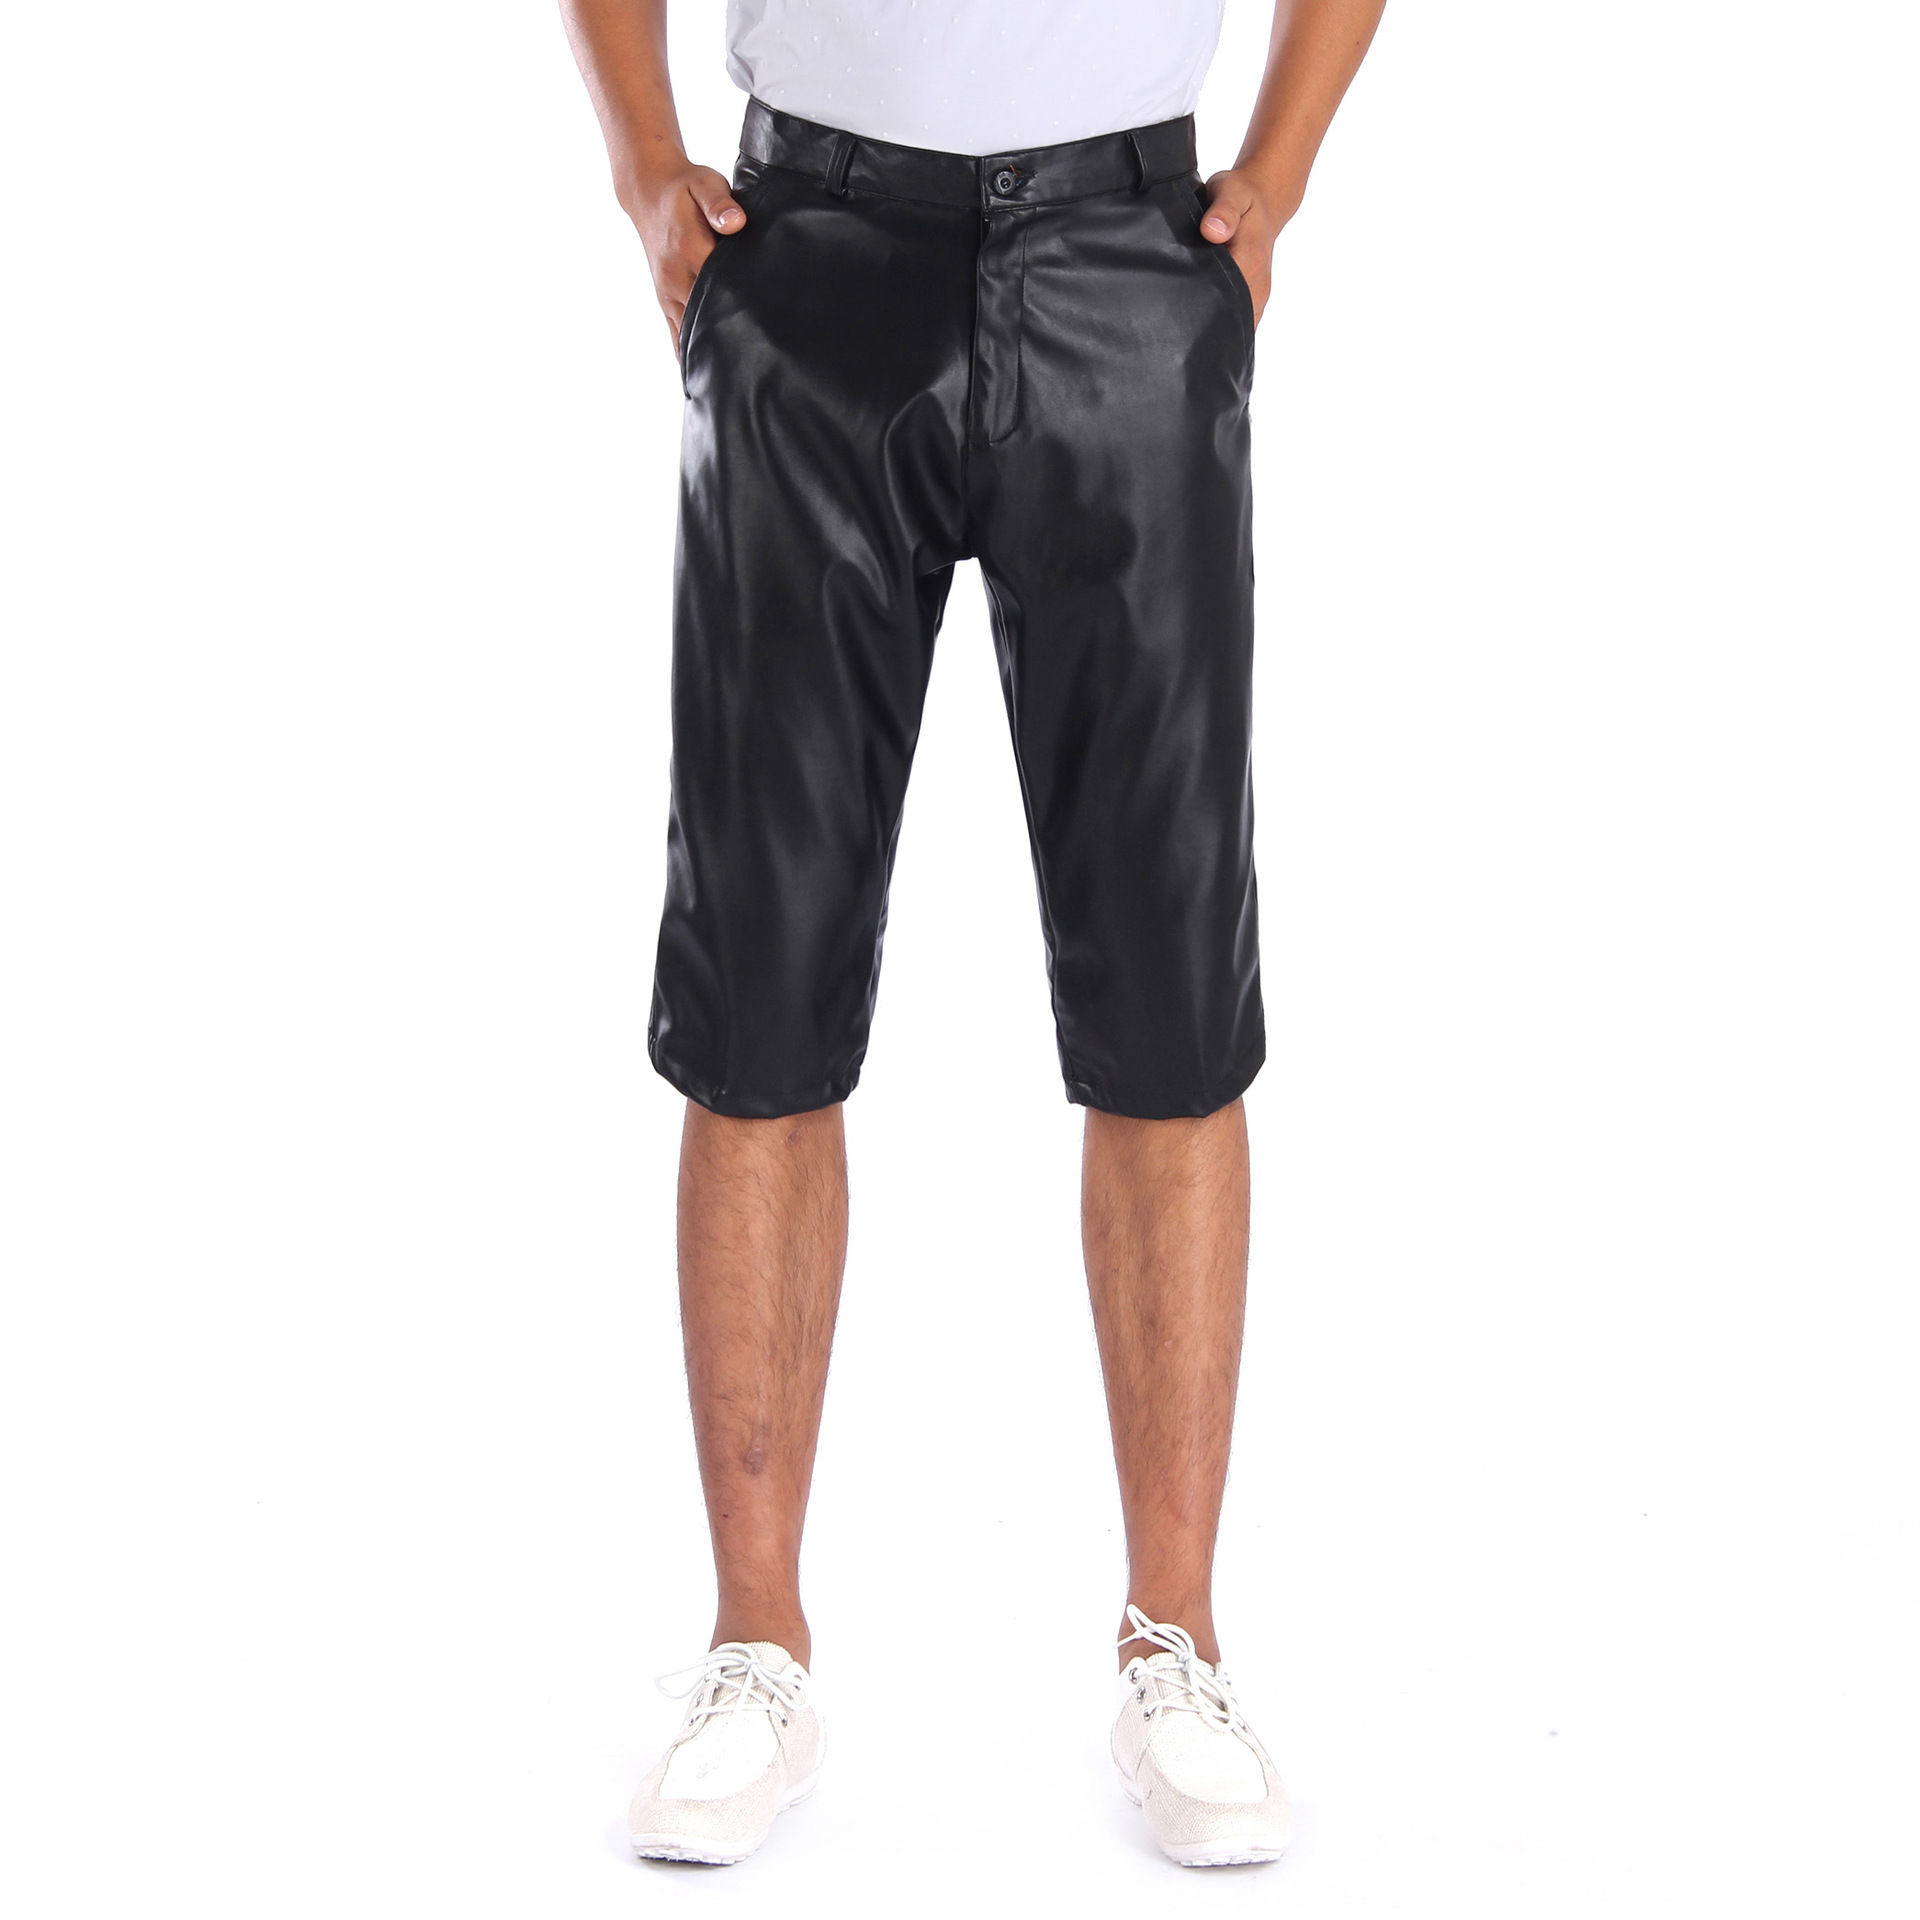 Summer elastic cashless knitted 5 / 6 leather shorts water and dirt resistant work pants labor protection loose men's leather pants